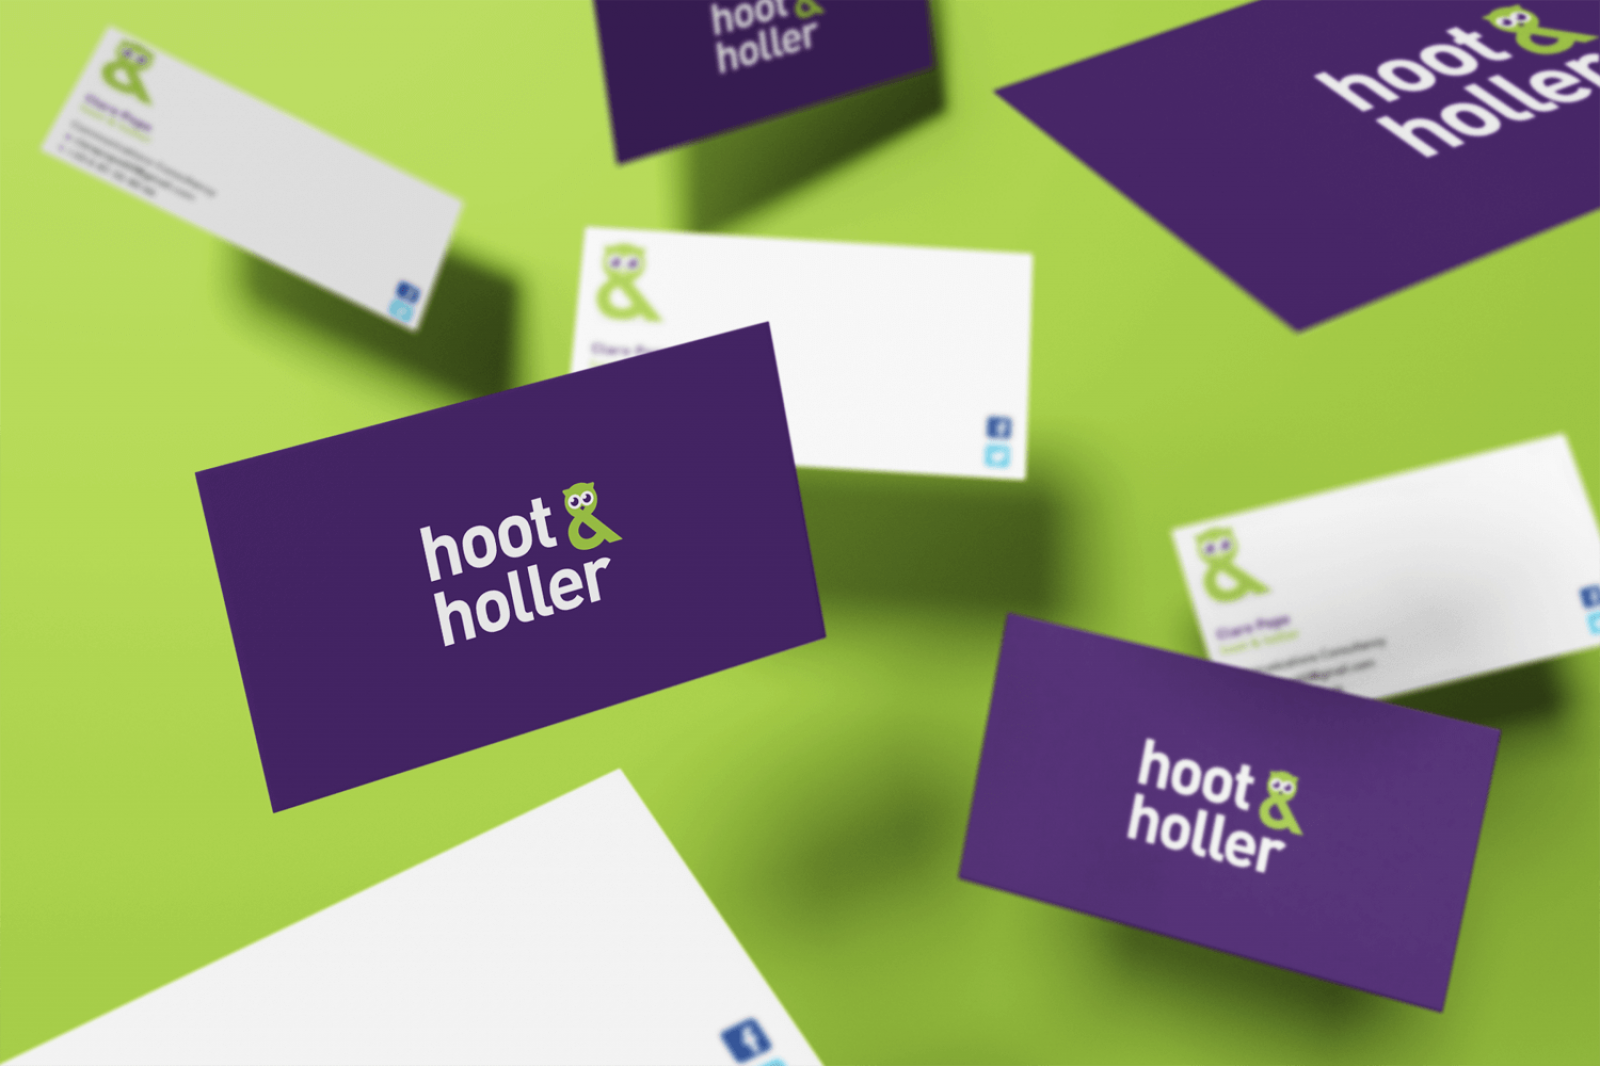 Hoot-business-card-corporate-identity-agency-graphic-design-canterbury.png